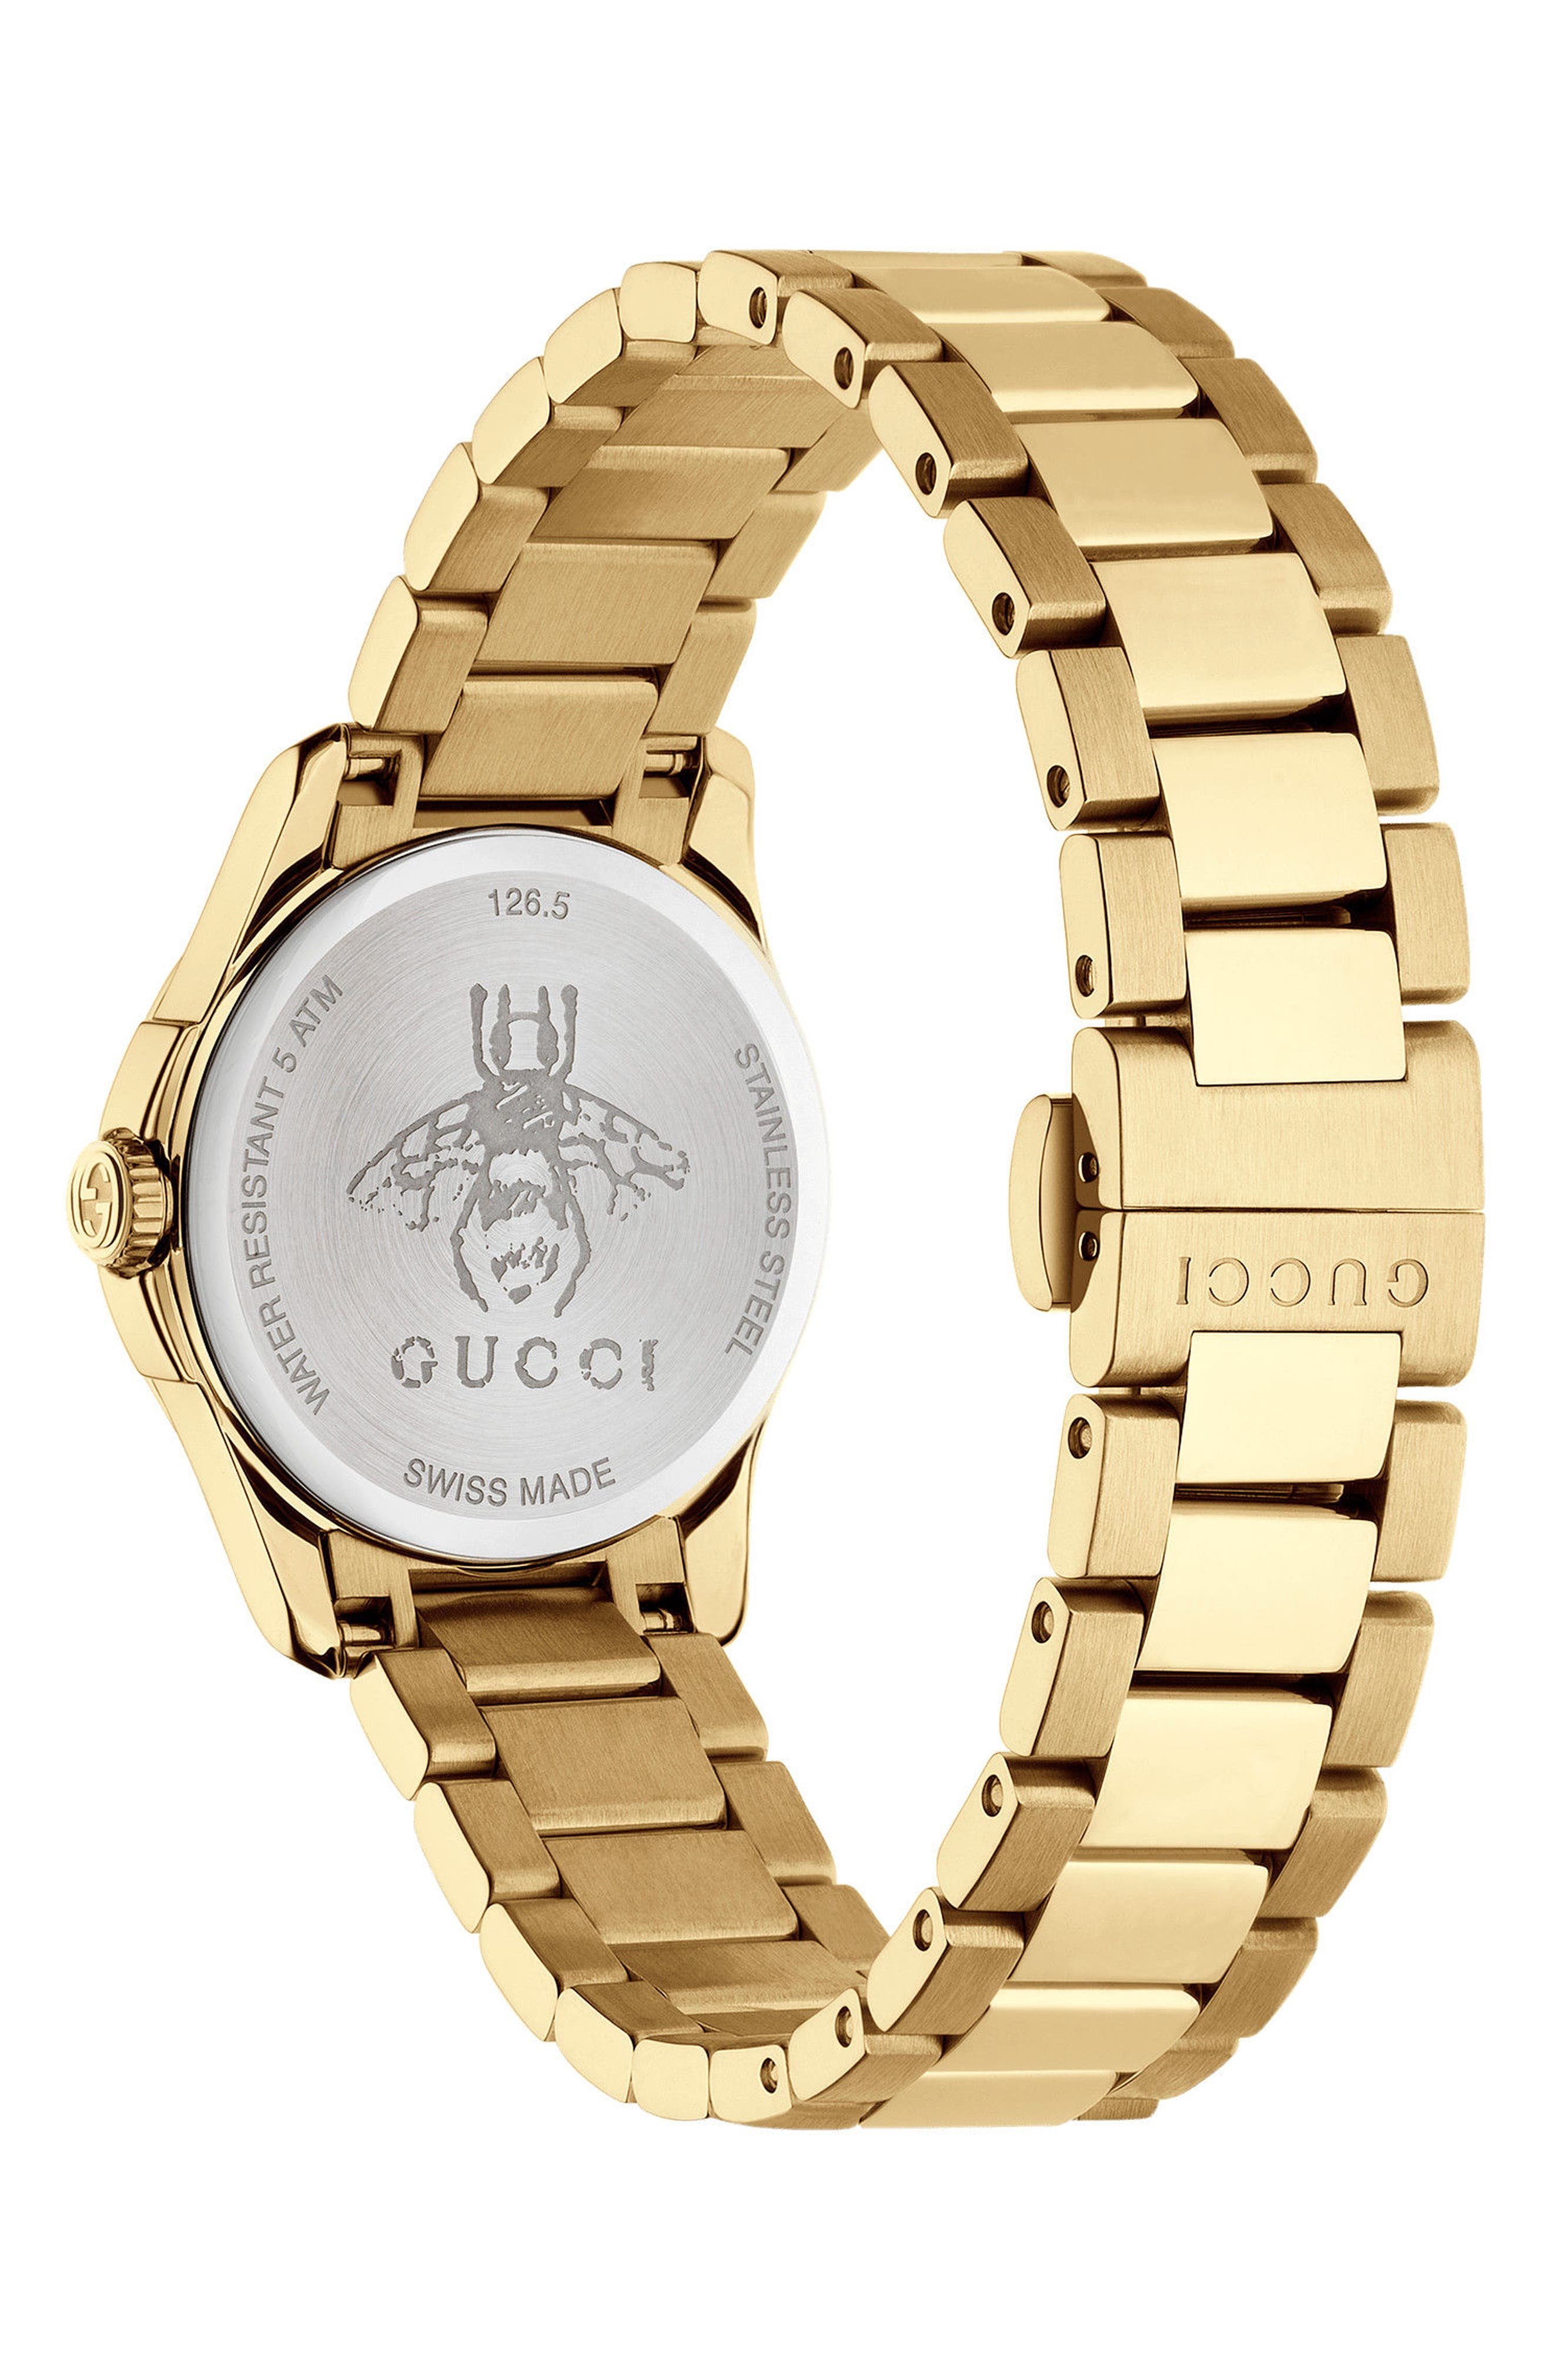 GUCCI, G-Timeless Bracelet Watch, 27mm, Alternate thumbnail 2, color, GOLD/ SILVER/ GOLD